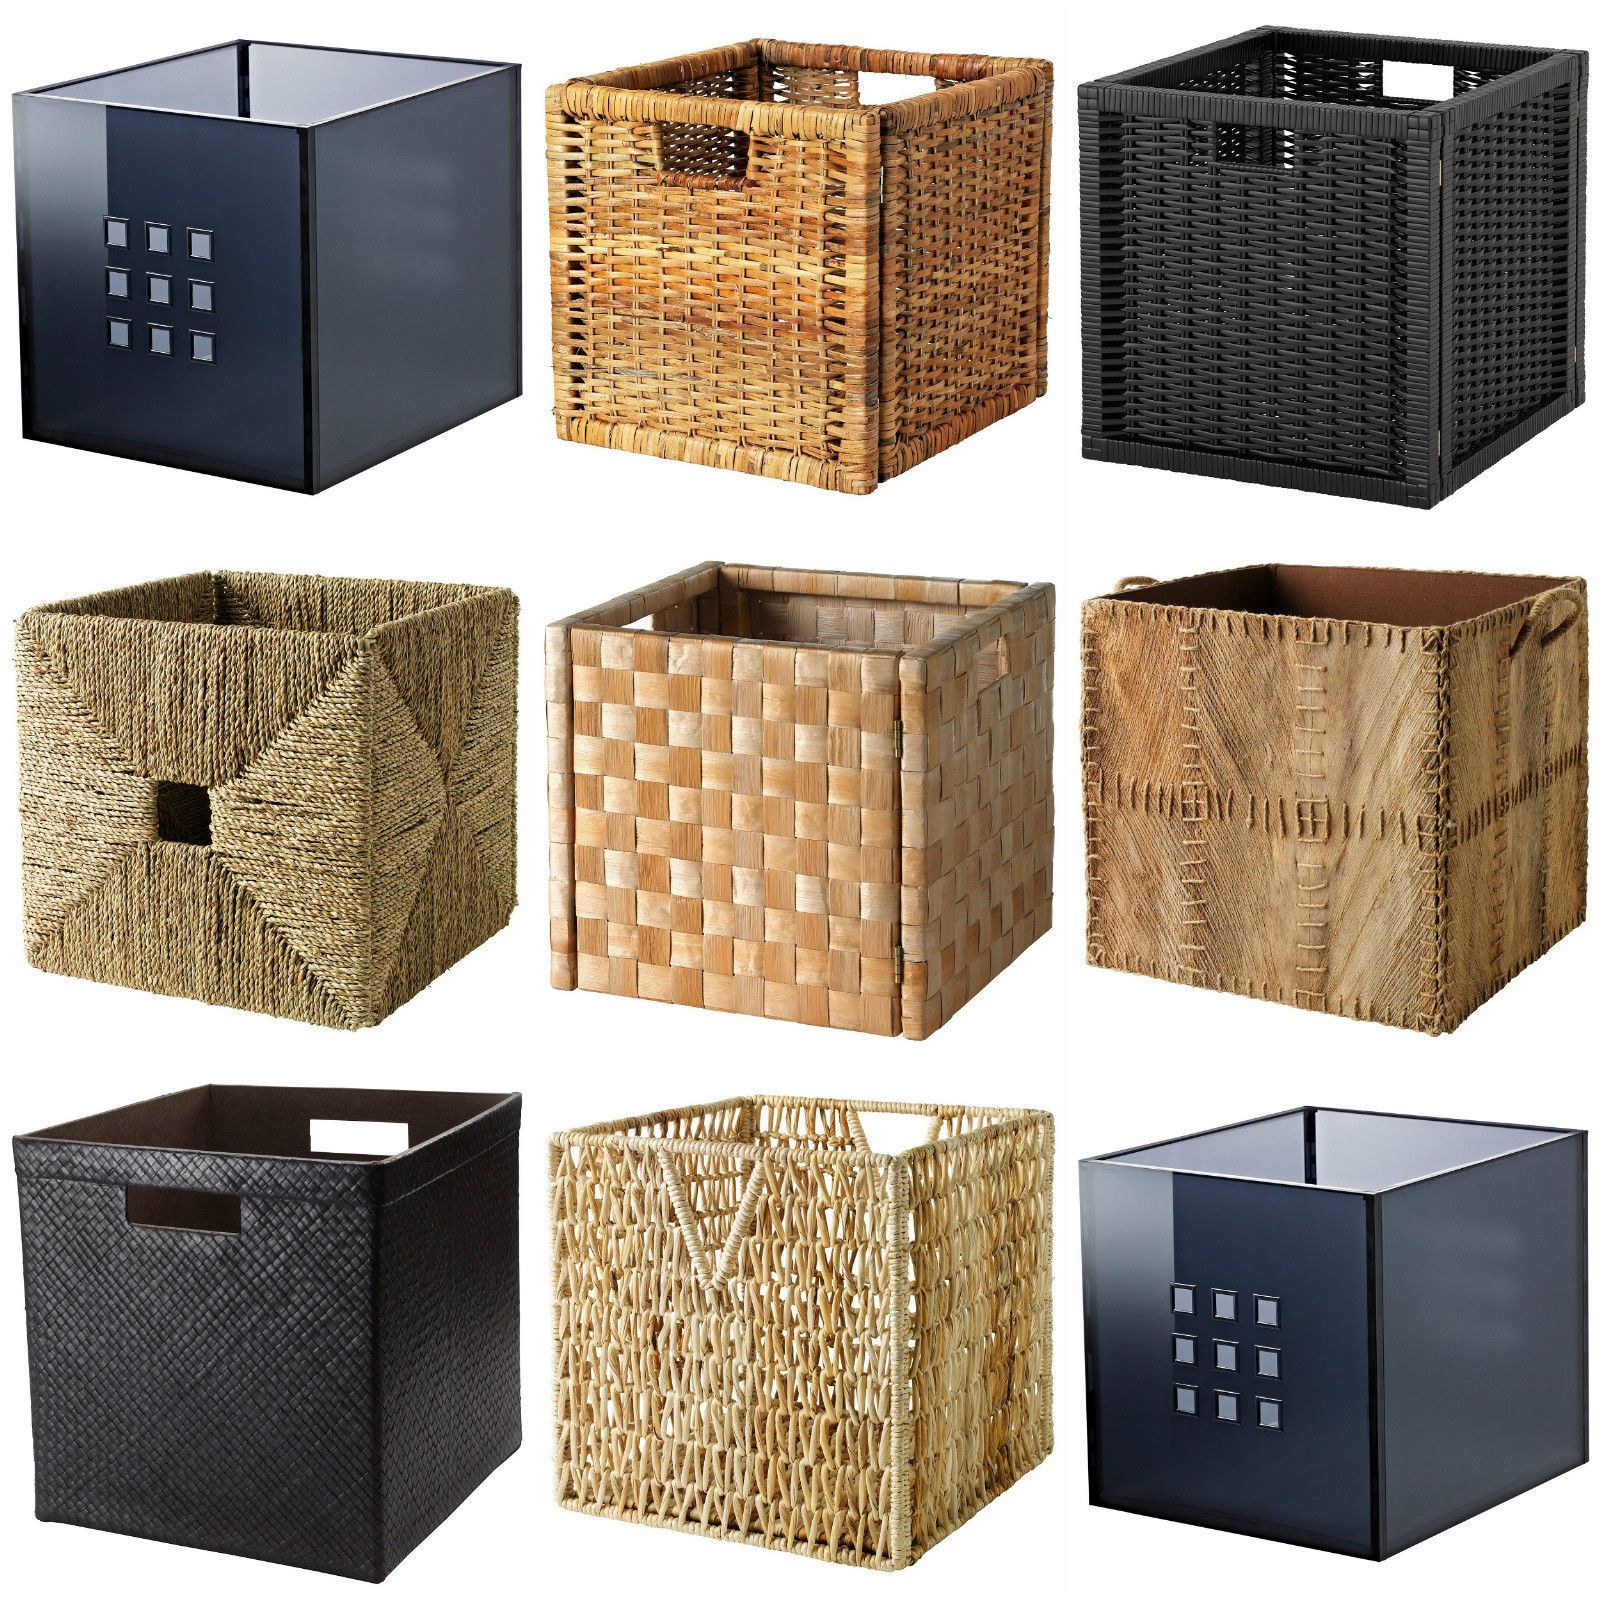 ikea boxes - baskets dimensioned to fit expedit shelving unit